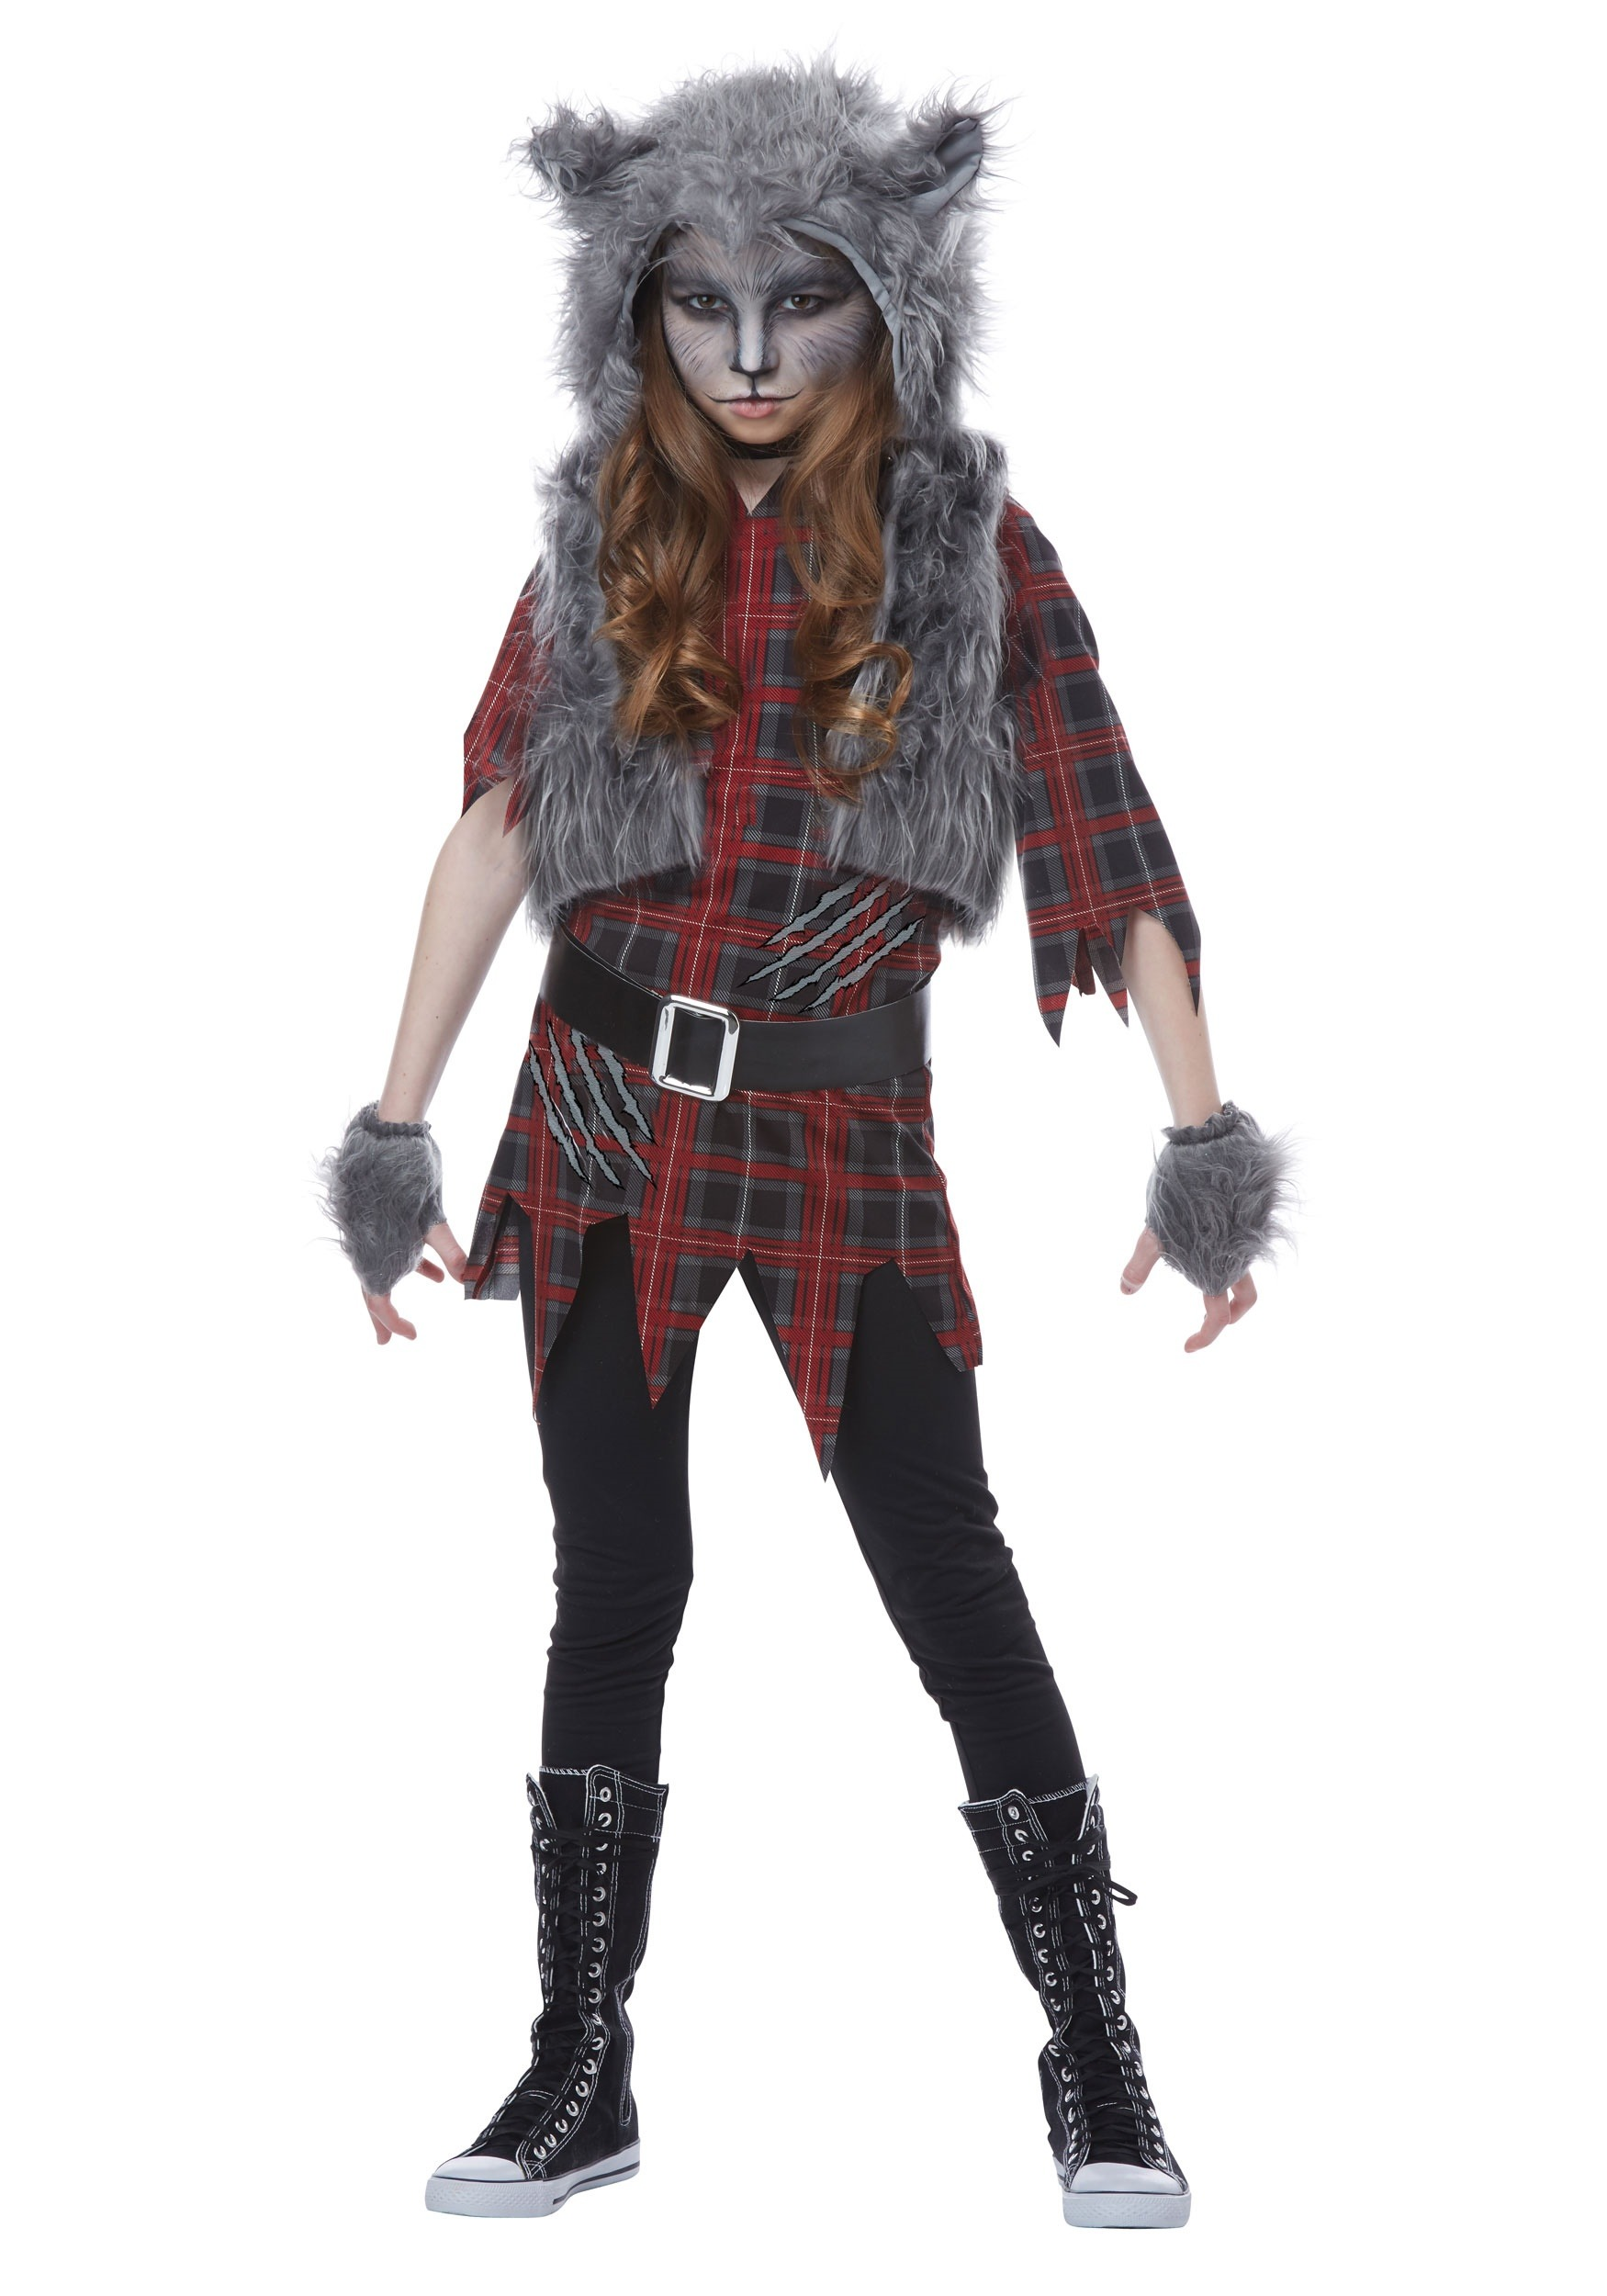 werewolf costume for girls. Black Bedroom Furniture Sets. Home Design Ideas